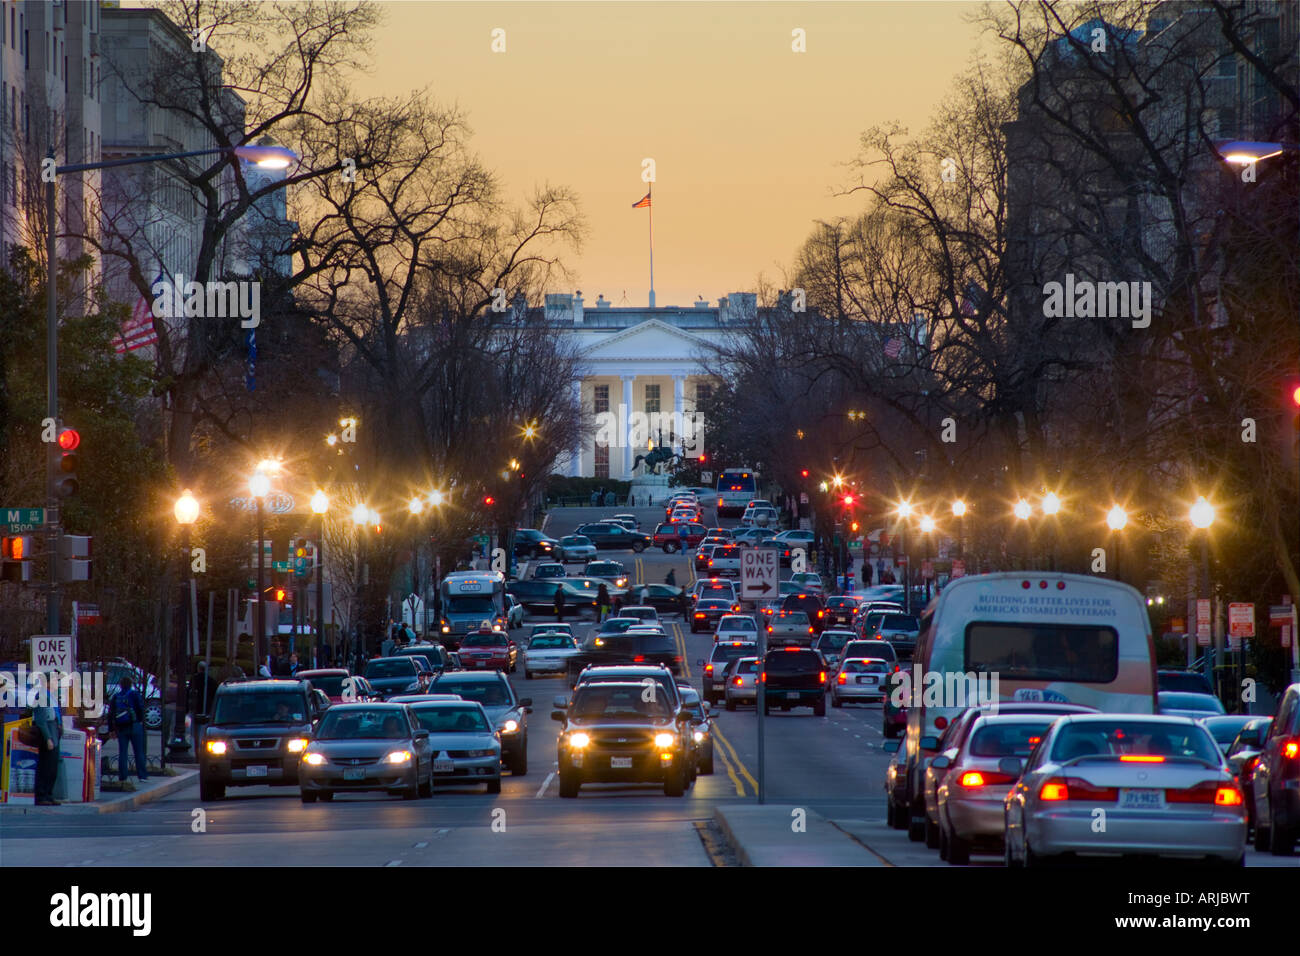 https://c7.alamy.com/comp/ARJBWT/view-down-16th-street-nw-washington-dc-with-the-white-house-at-the-ARJBWT.jpg